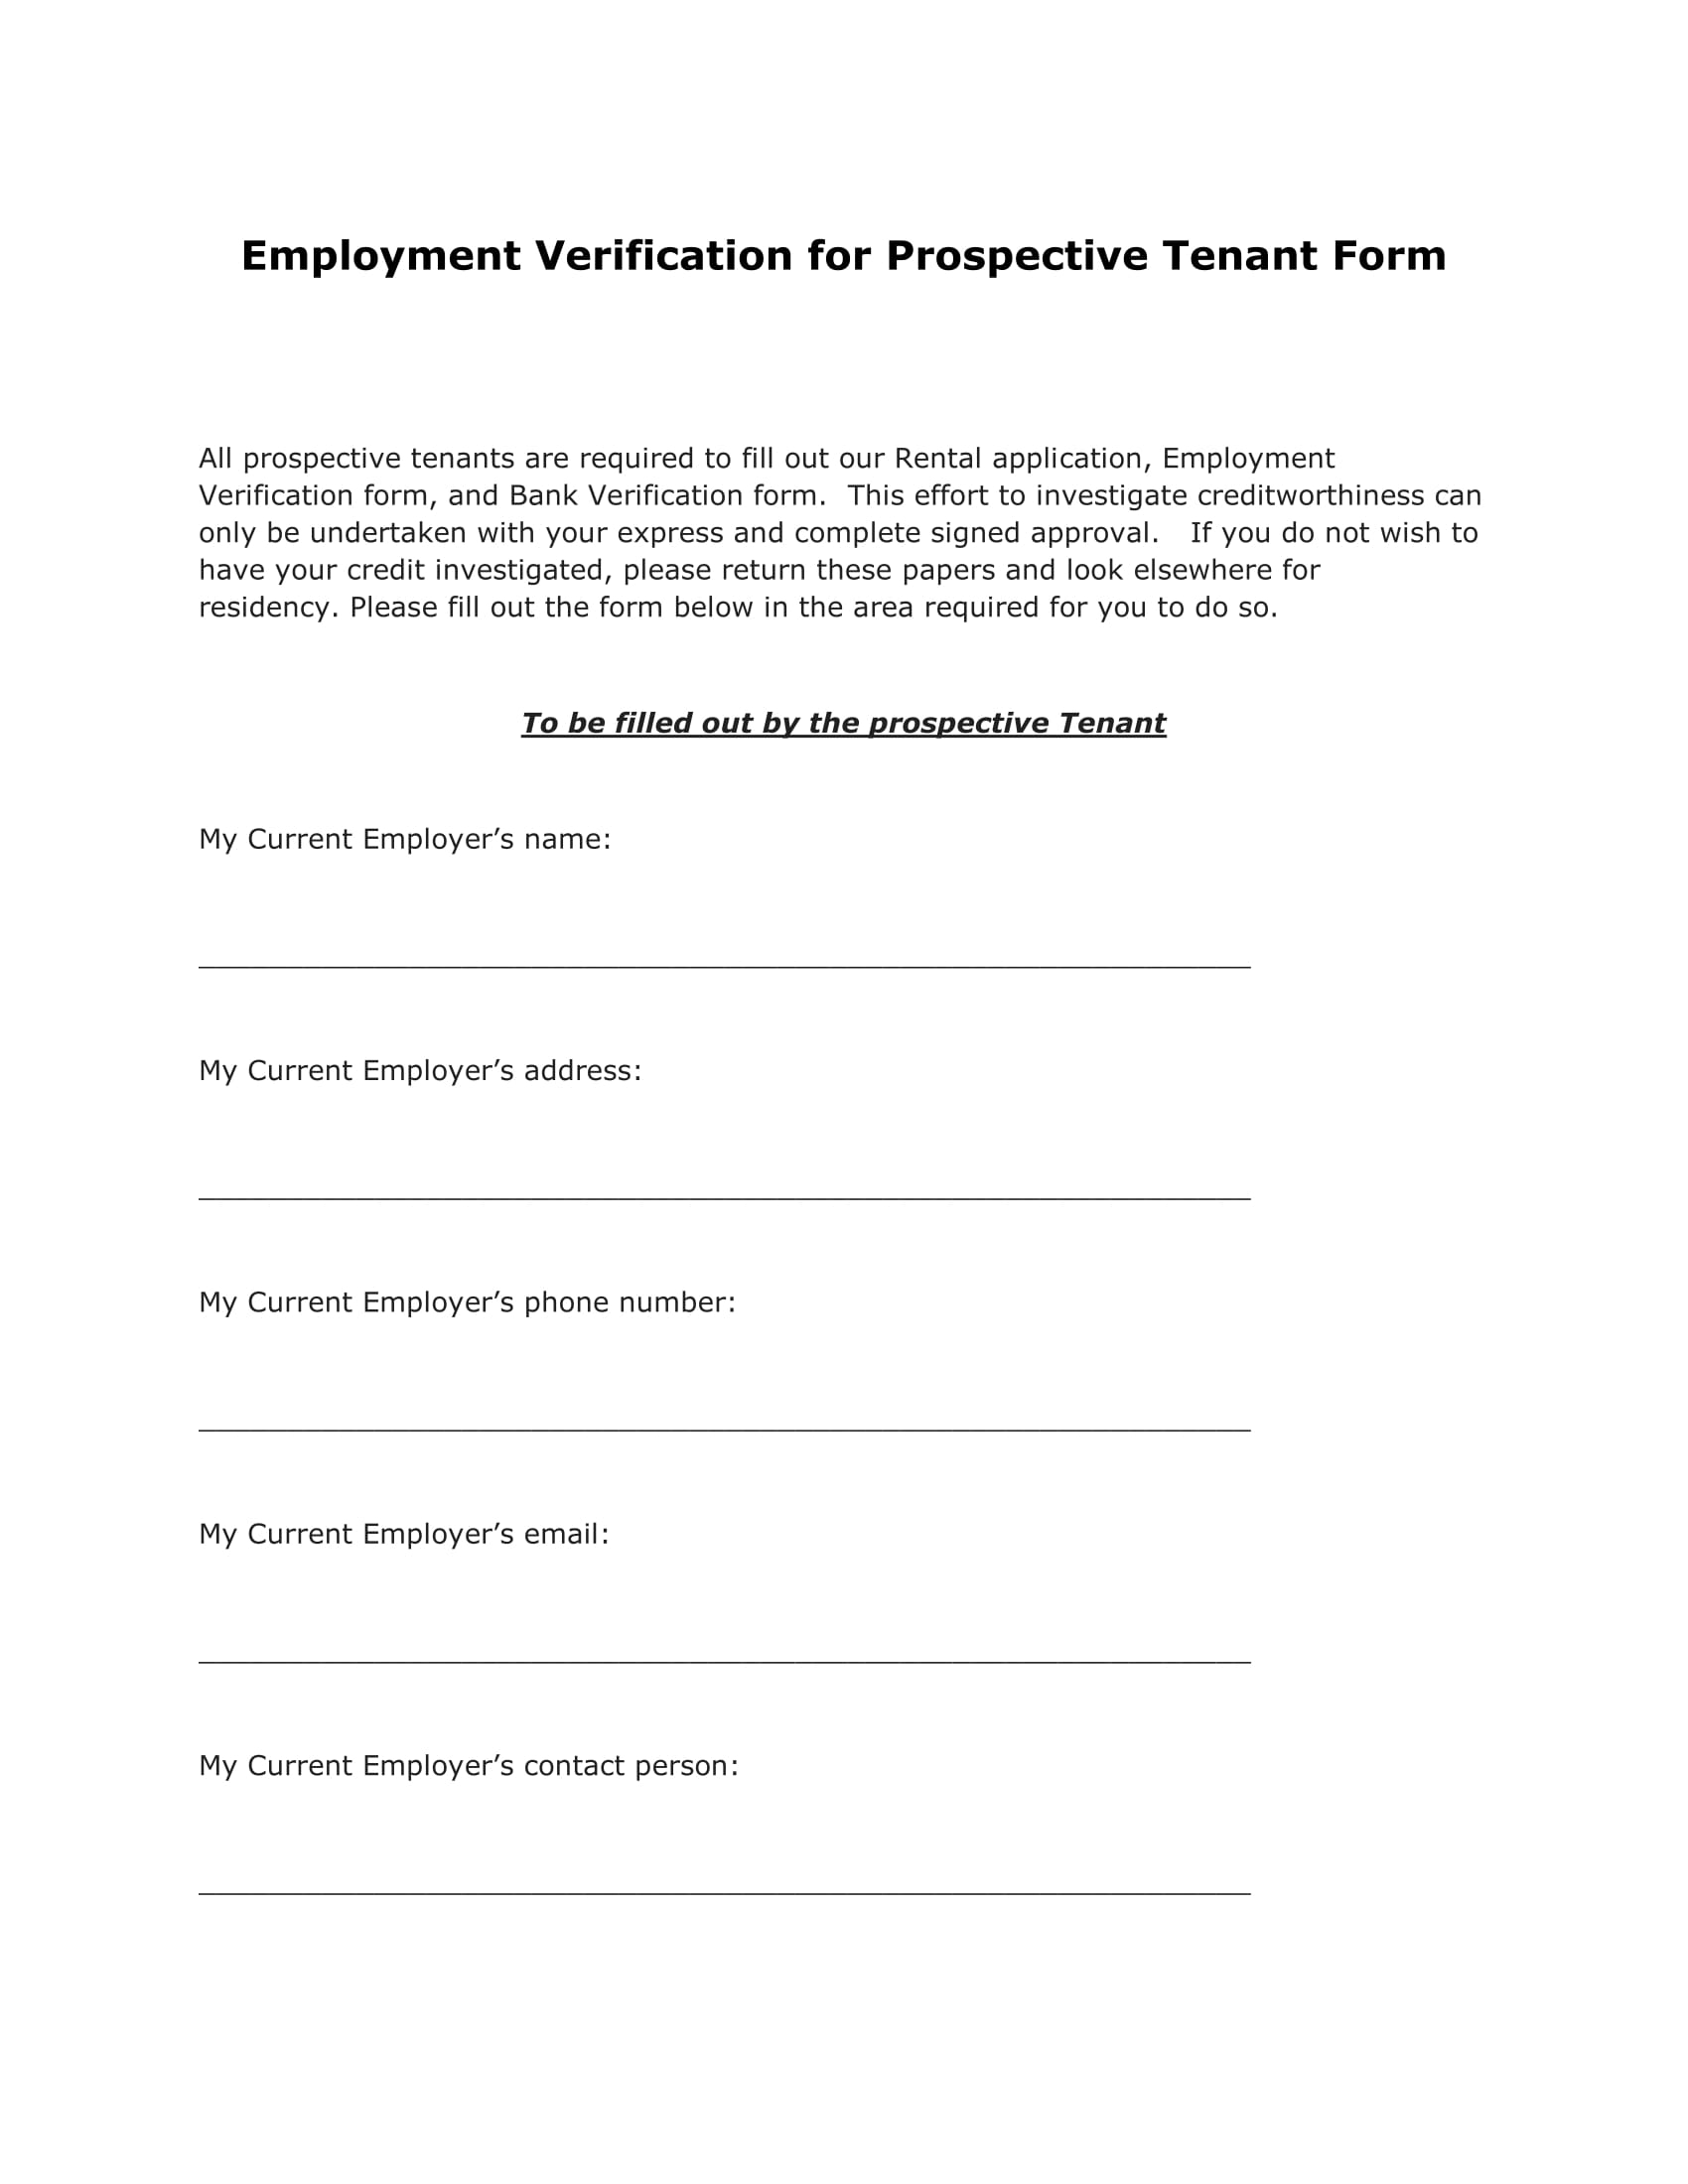 Tenant Employment Verification Form Prospective Tenant Employment  Verification Form 1 Tenant Employment Verificationhtml Landlord Employment  Verification ...  Landlord Employment Verification Form